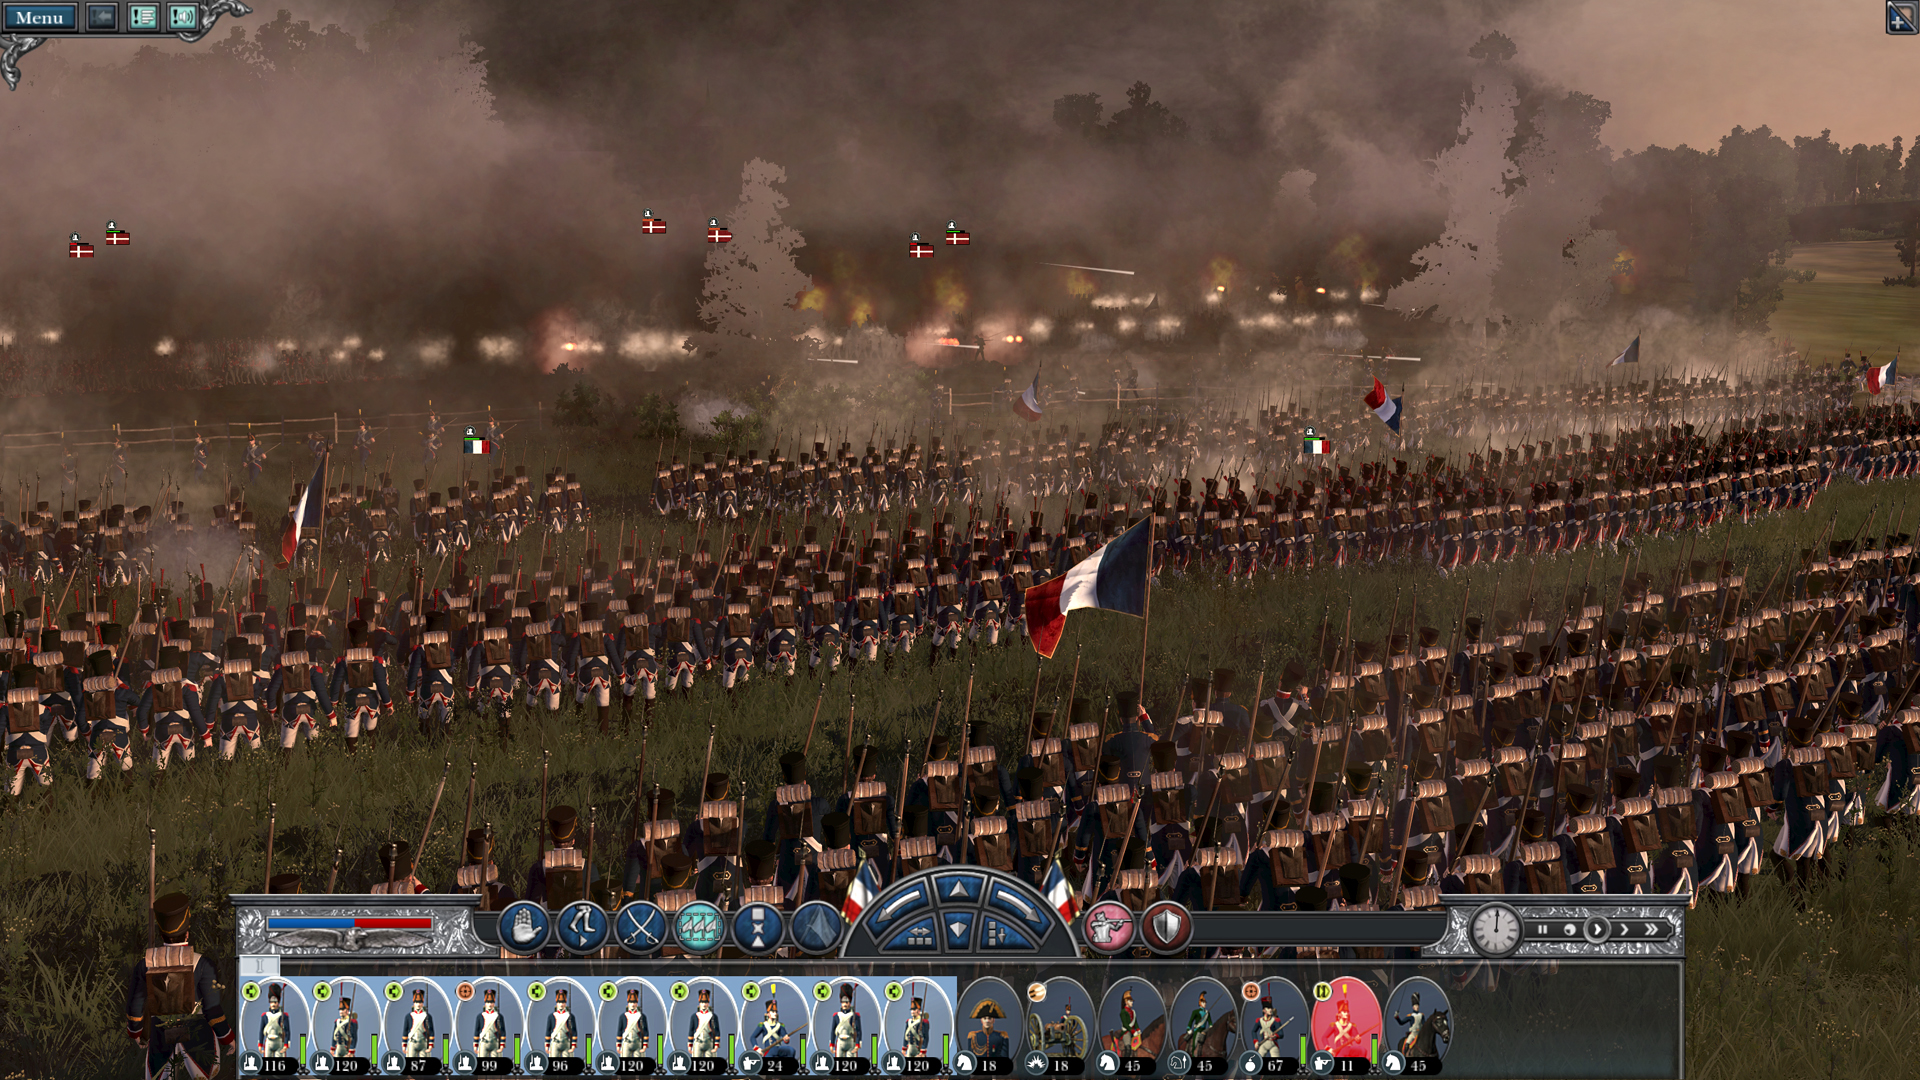 Napoleon total war razor1911 password txt